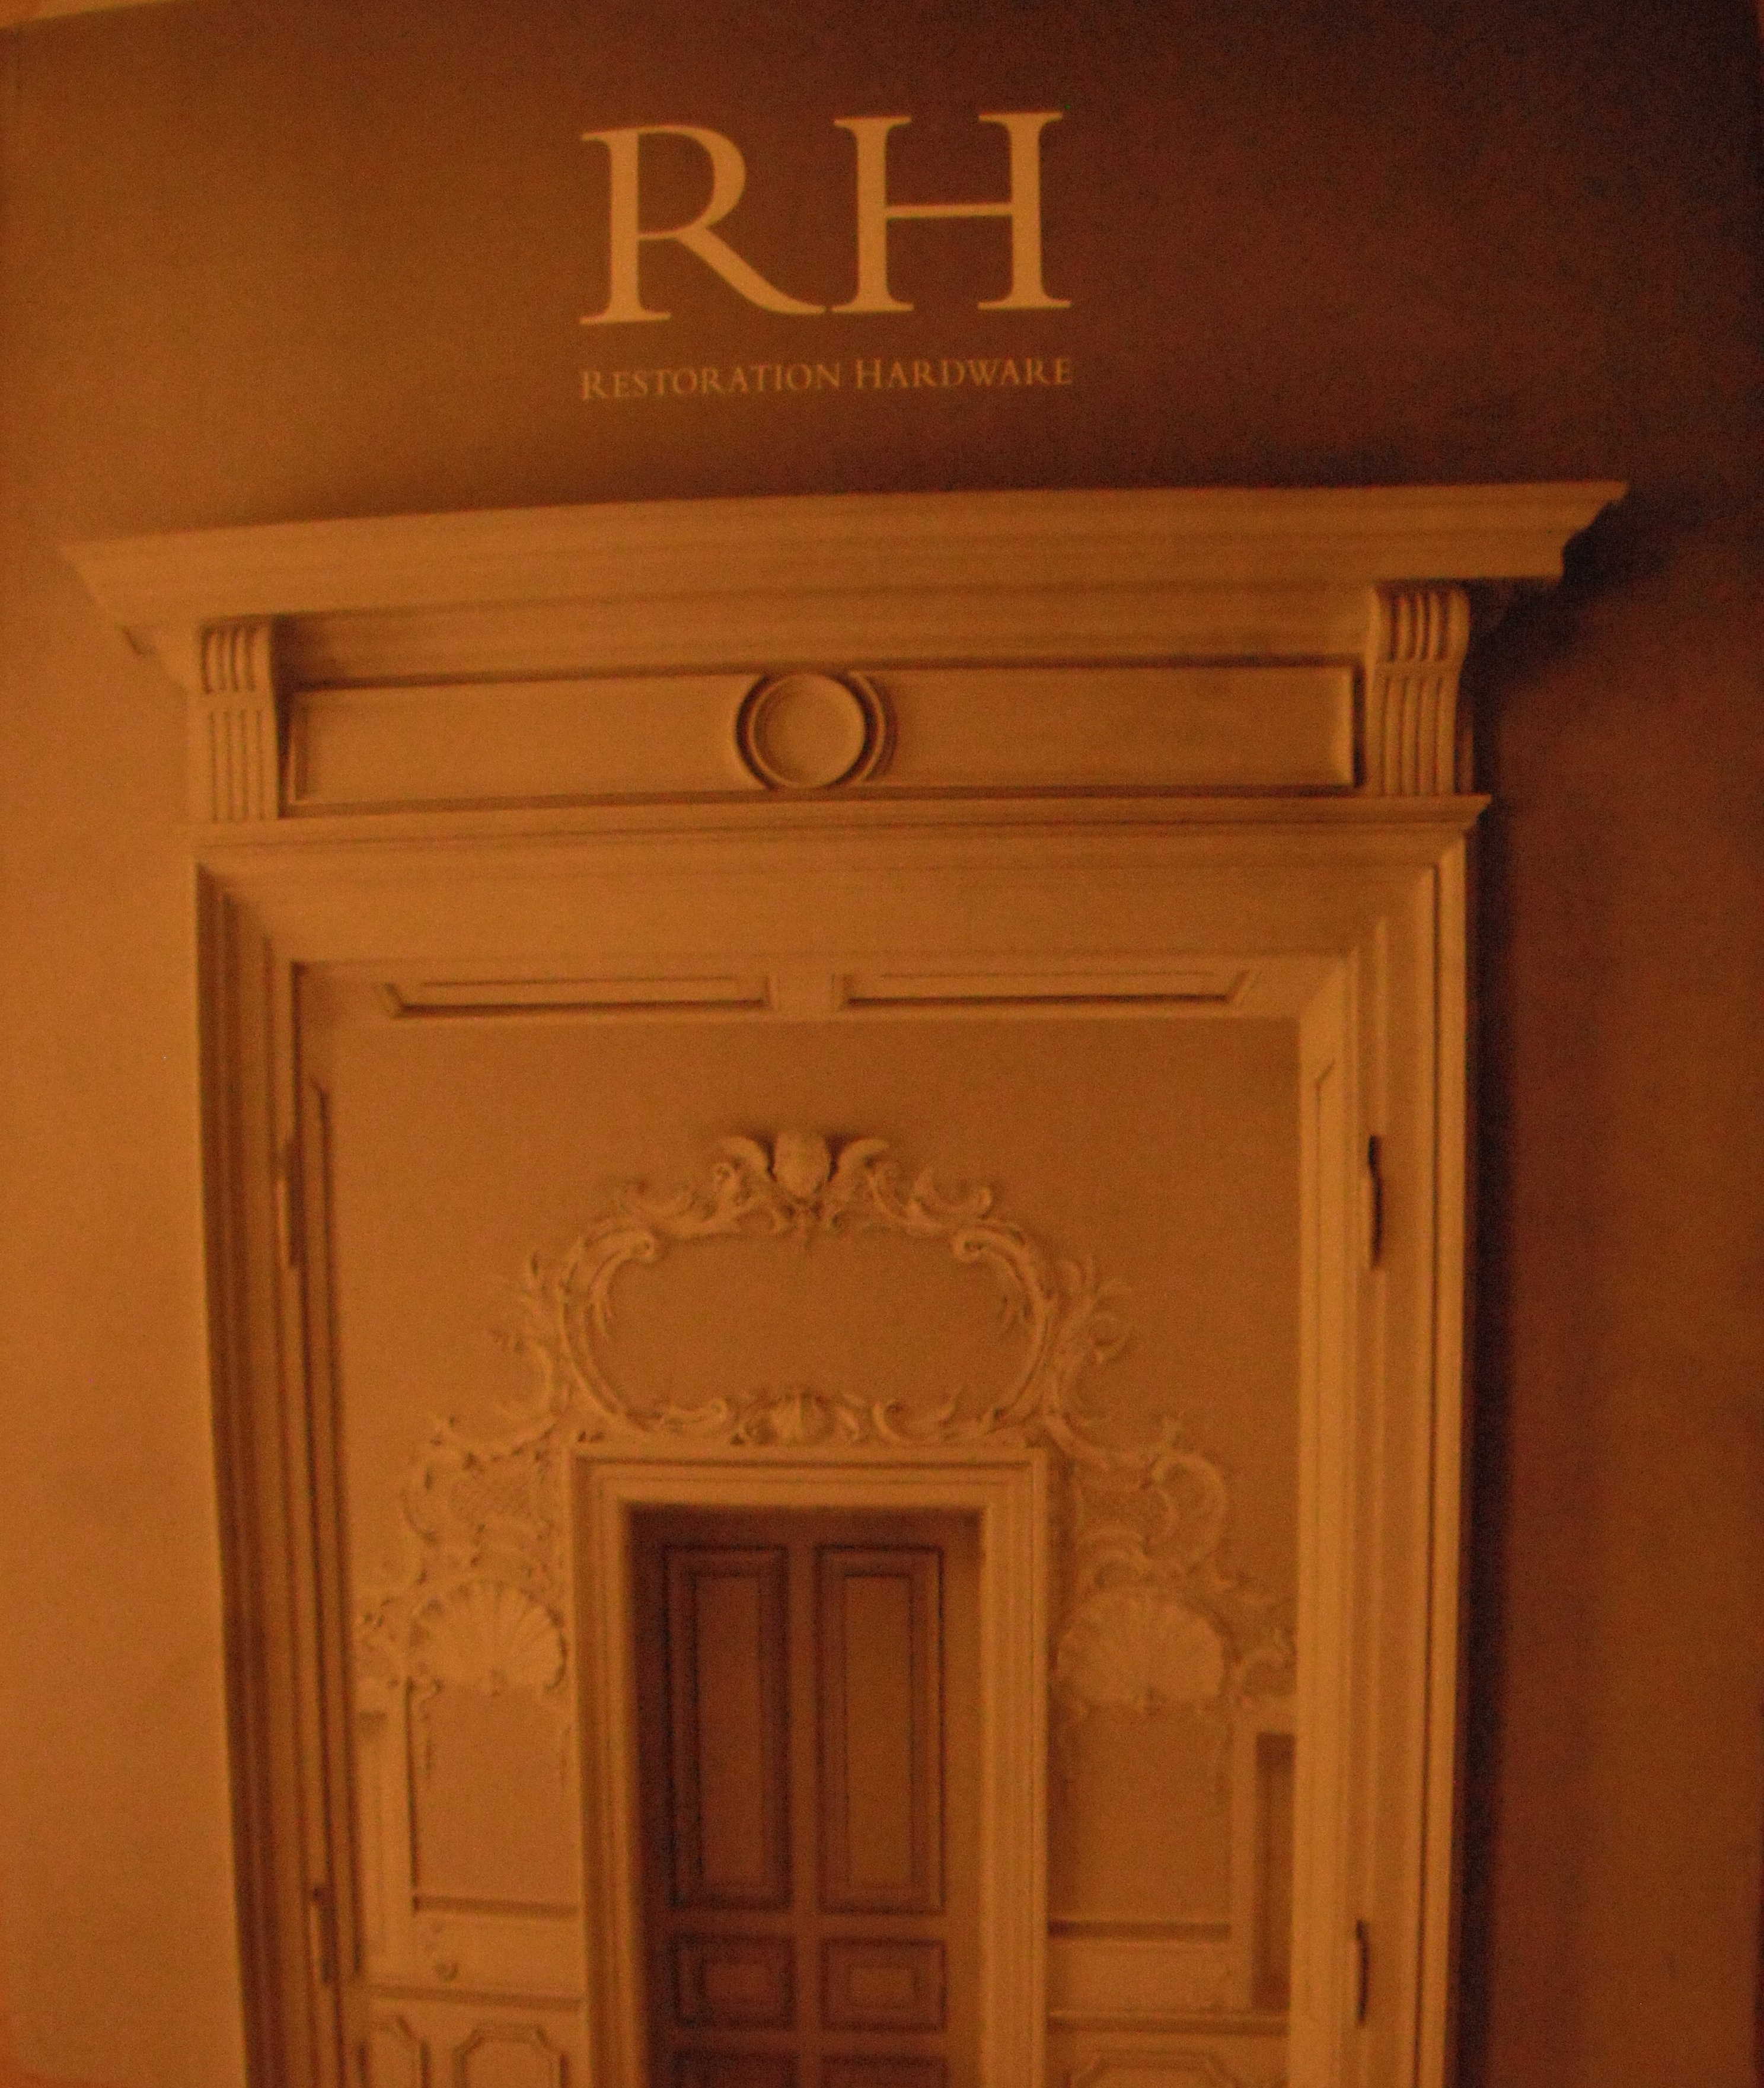 Restoration Hardware Catalog Fall 2012 Source Book